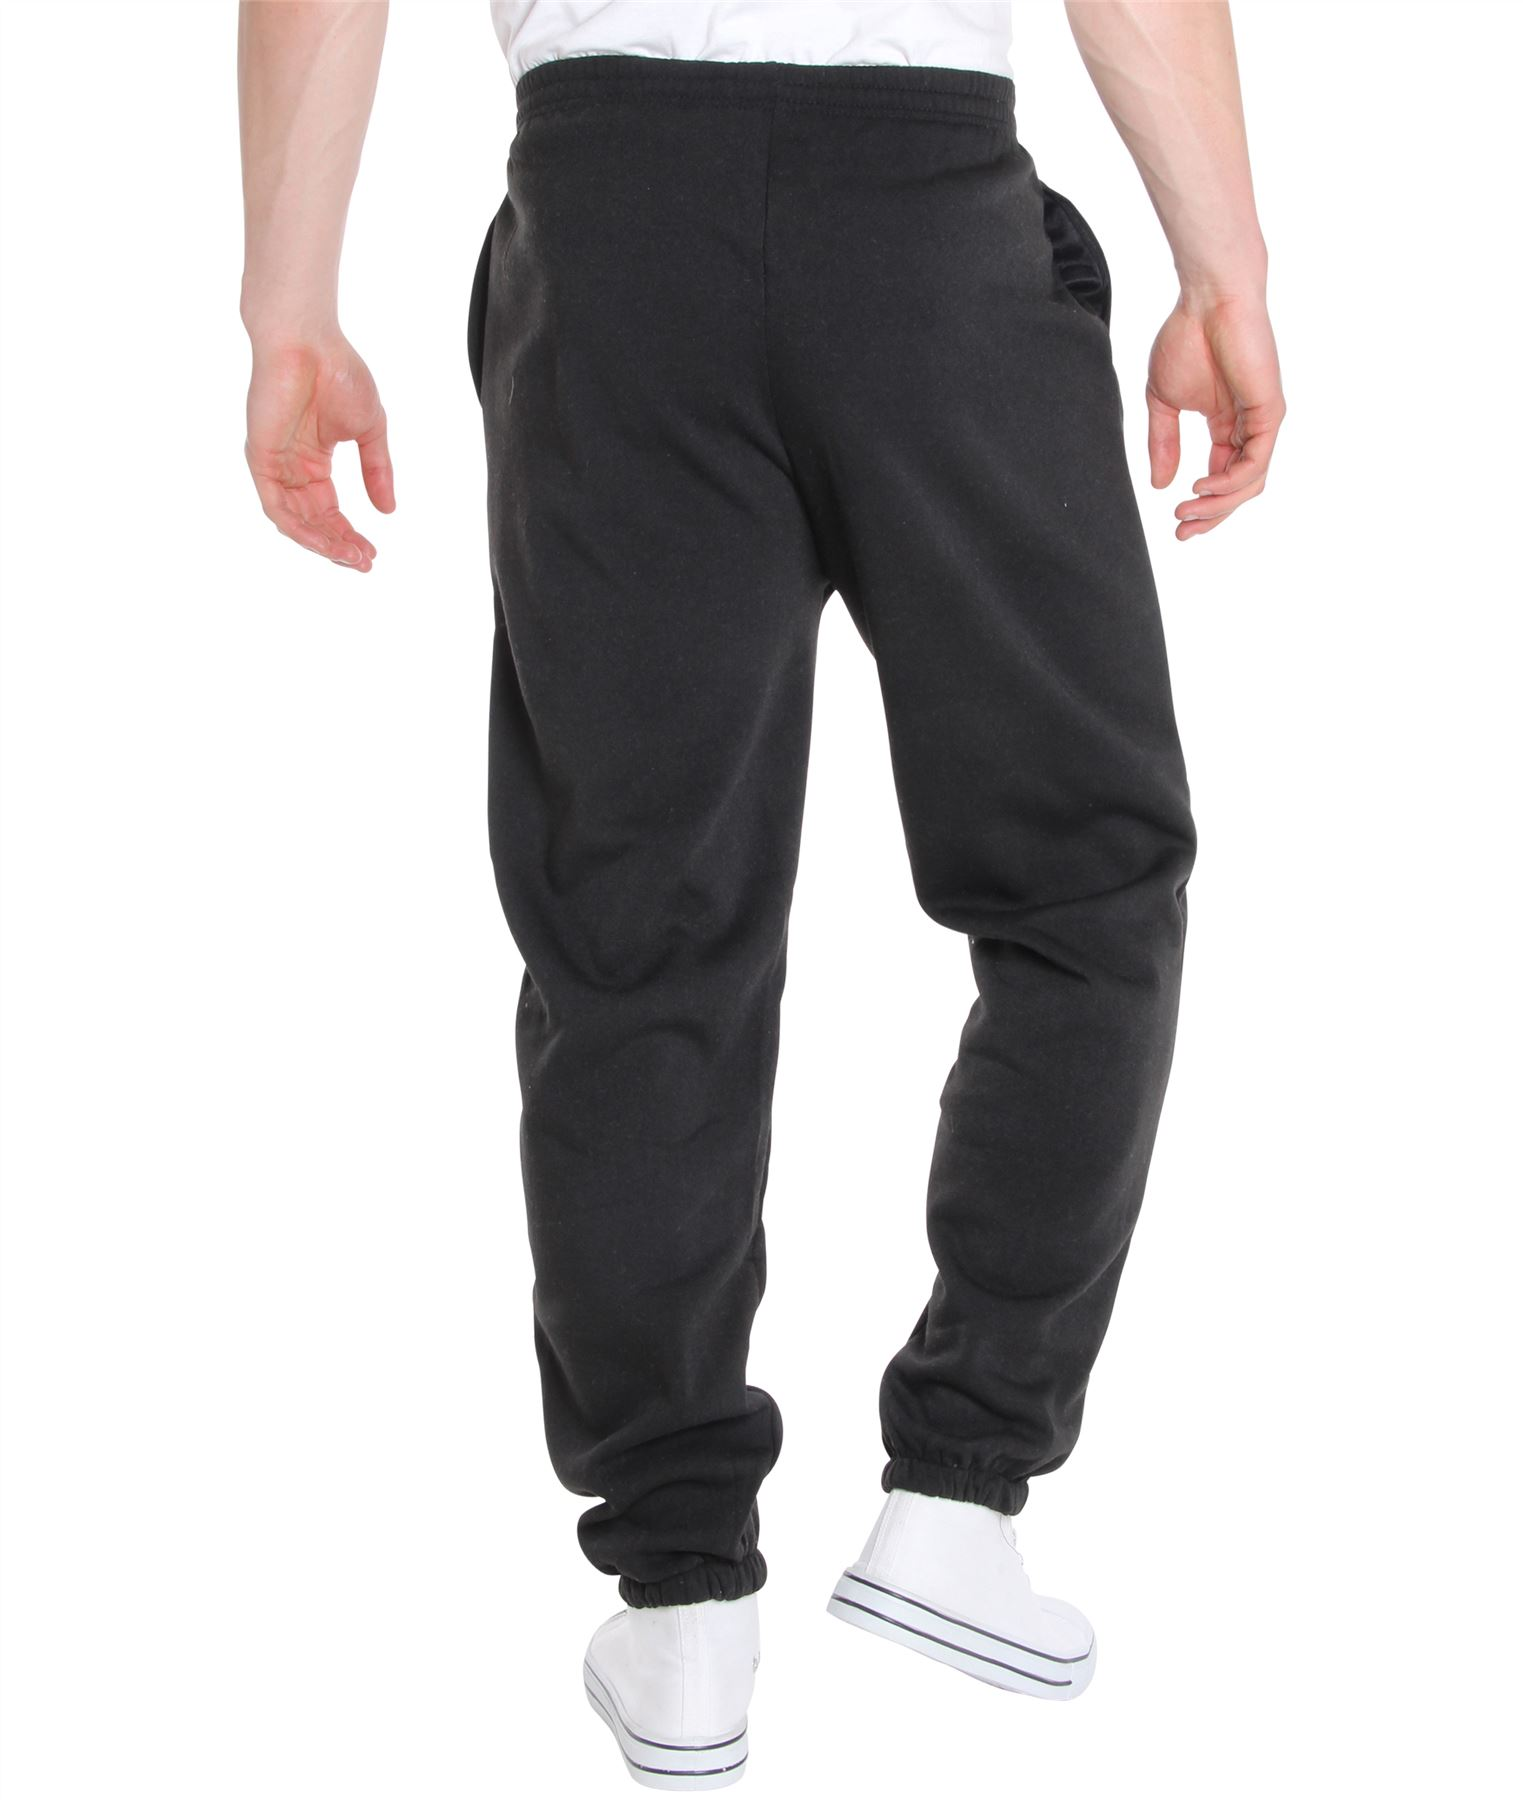 Mens-Tracksuit-Bottoms-Striped-Joggers-Jogging-Trousers-Fleece-Pants-Casual-Work thumbnail 3